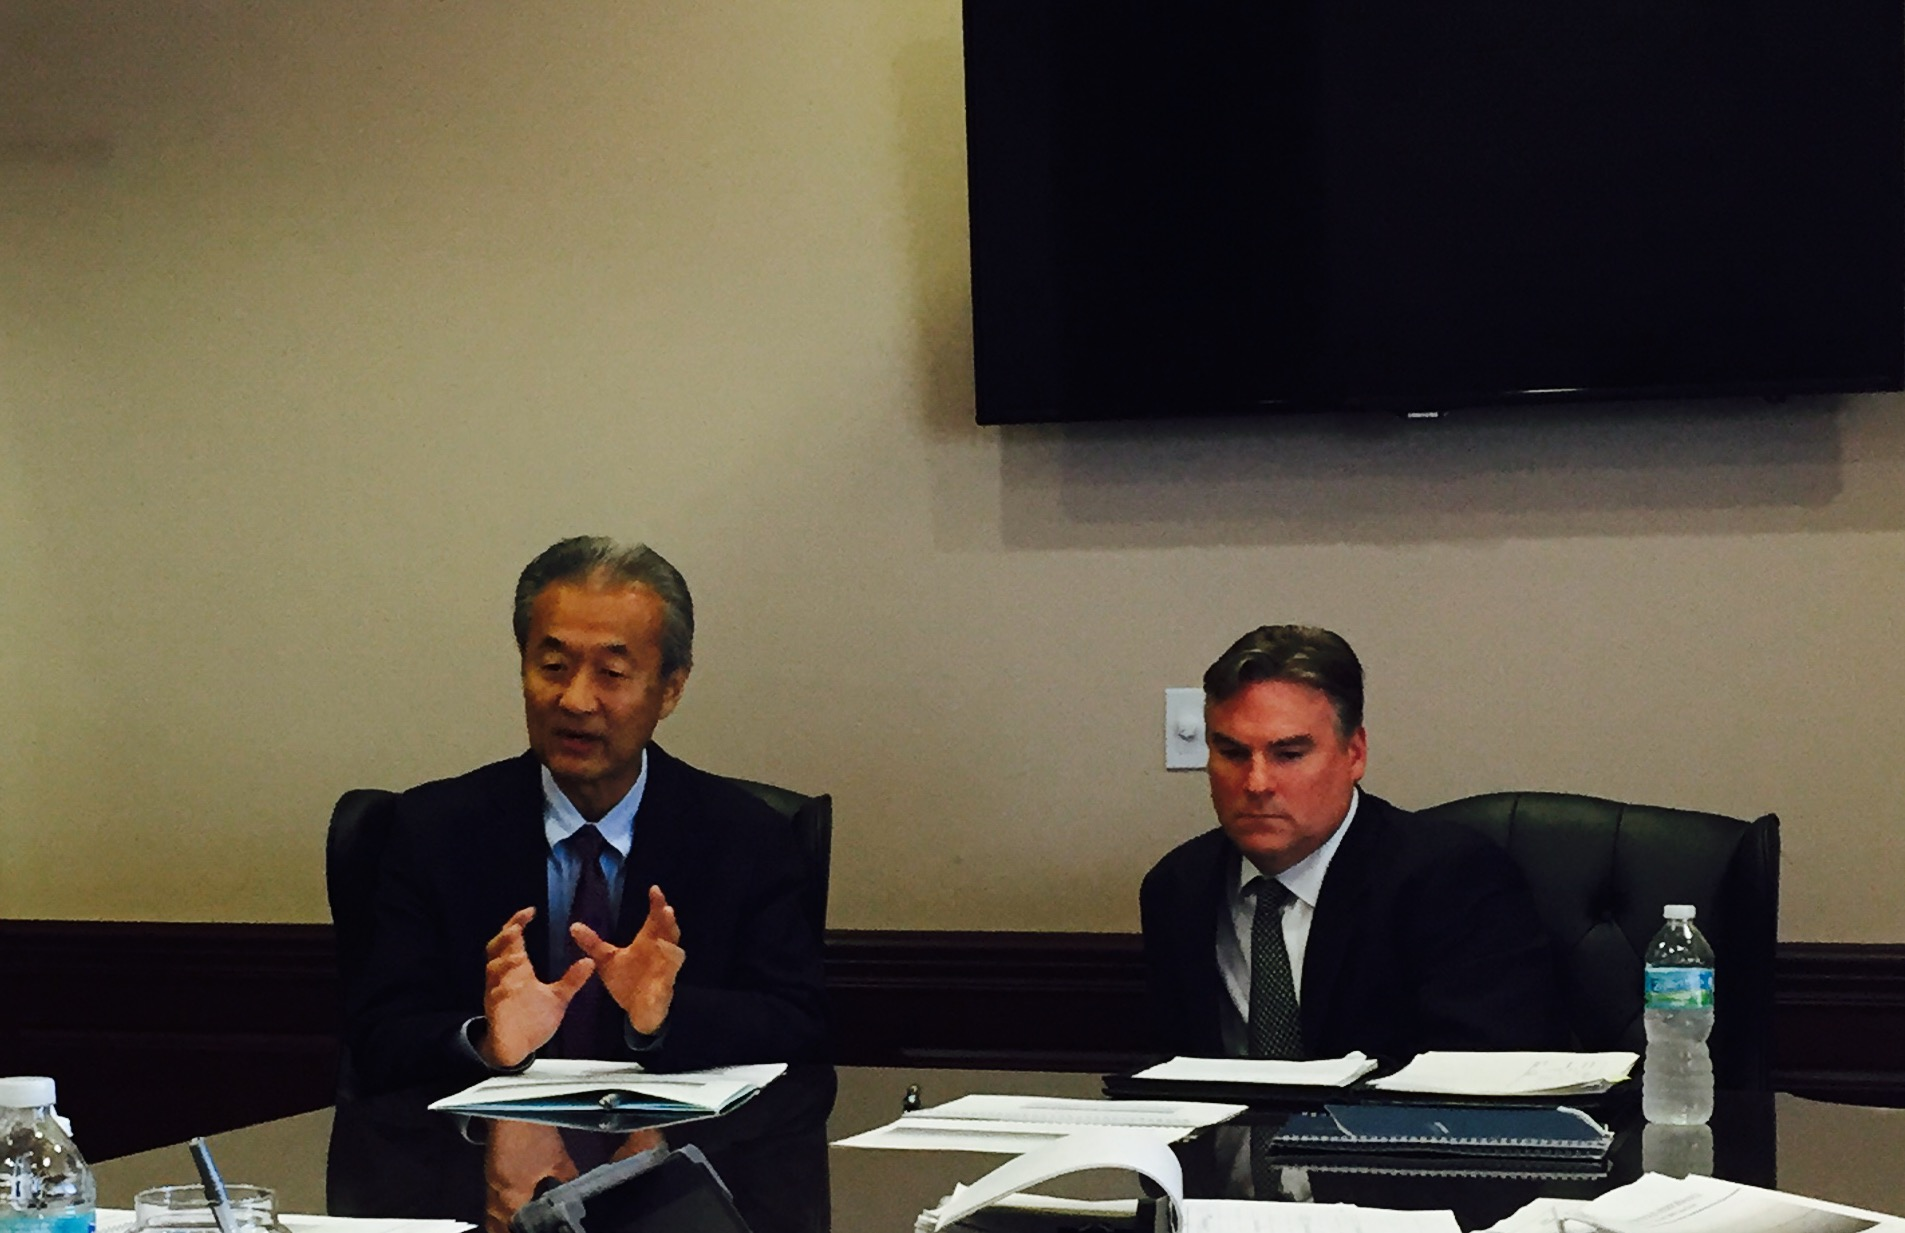 Guy Watanabe, President & Scott Mullet, Principal from GW Capital appeared before the Board to review their investment performance.